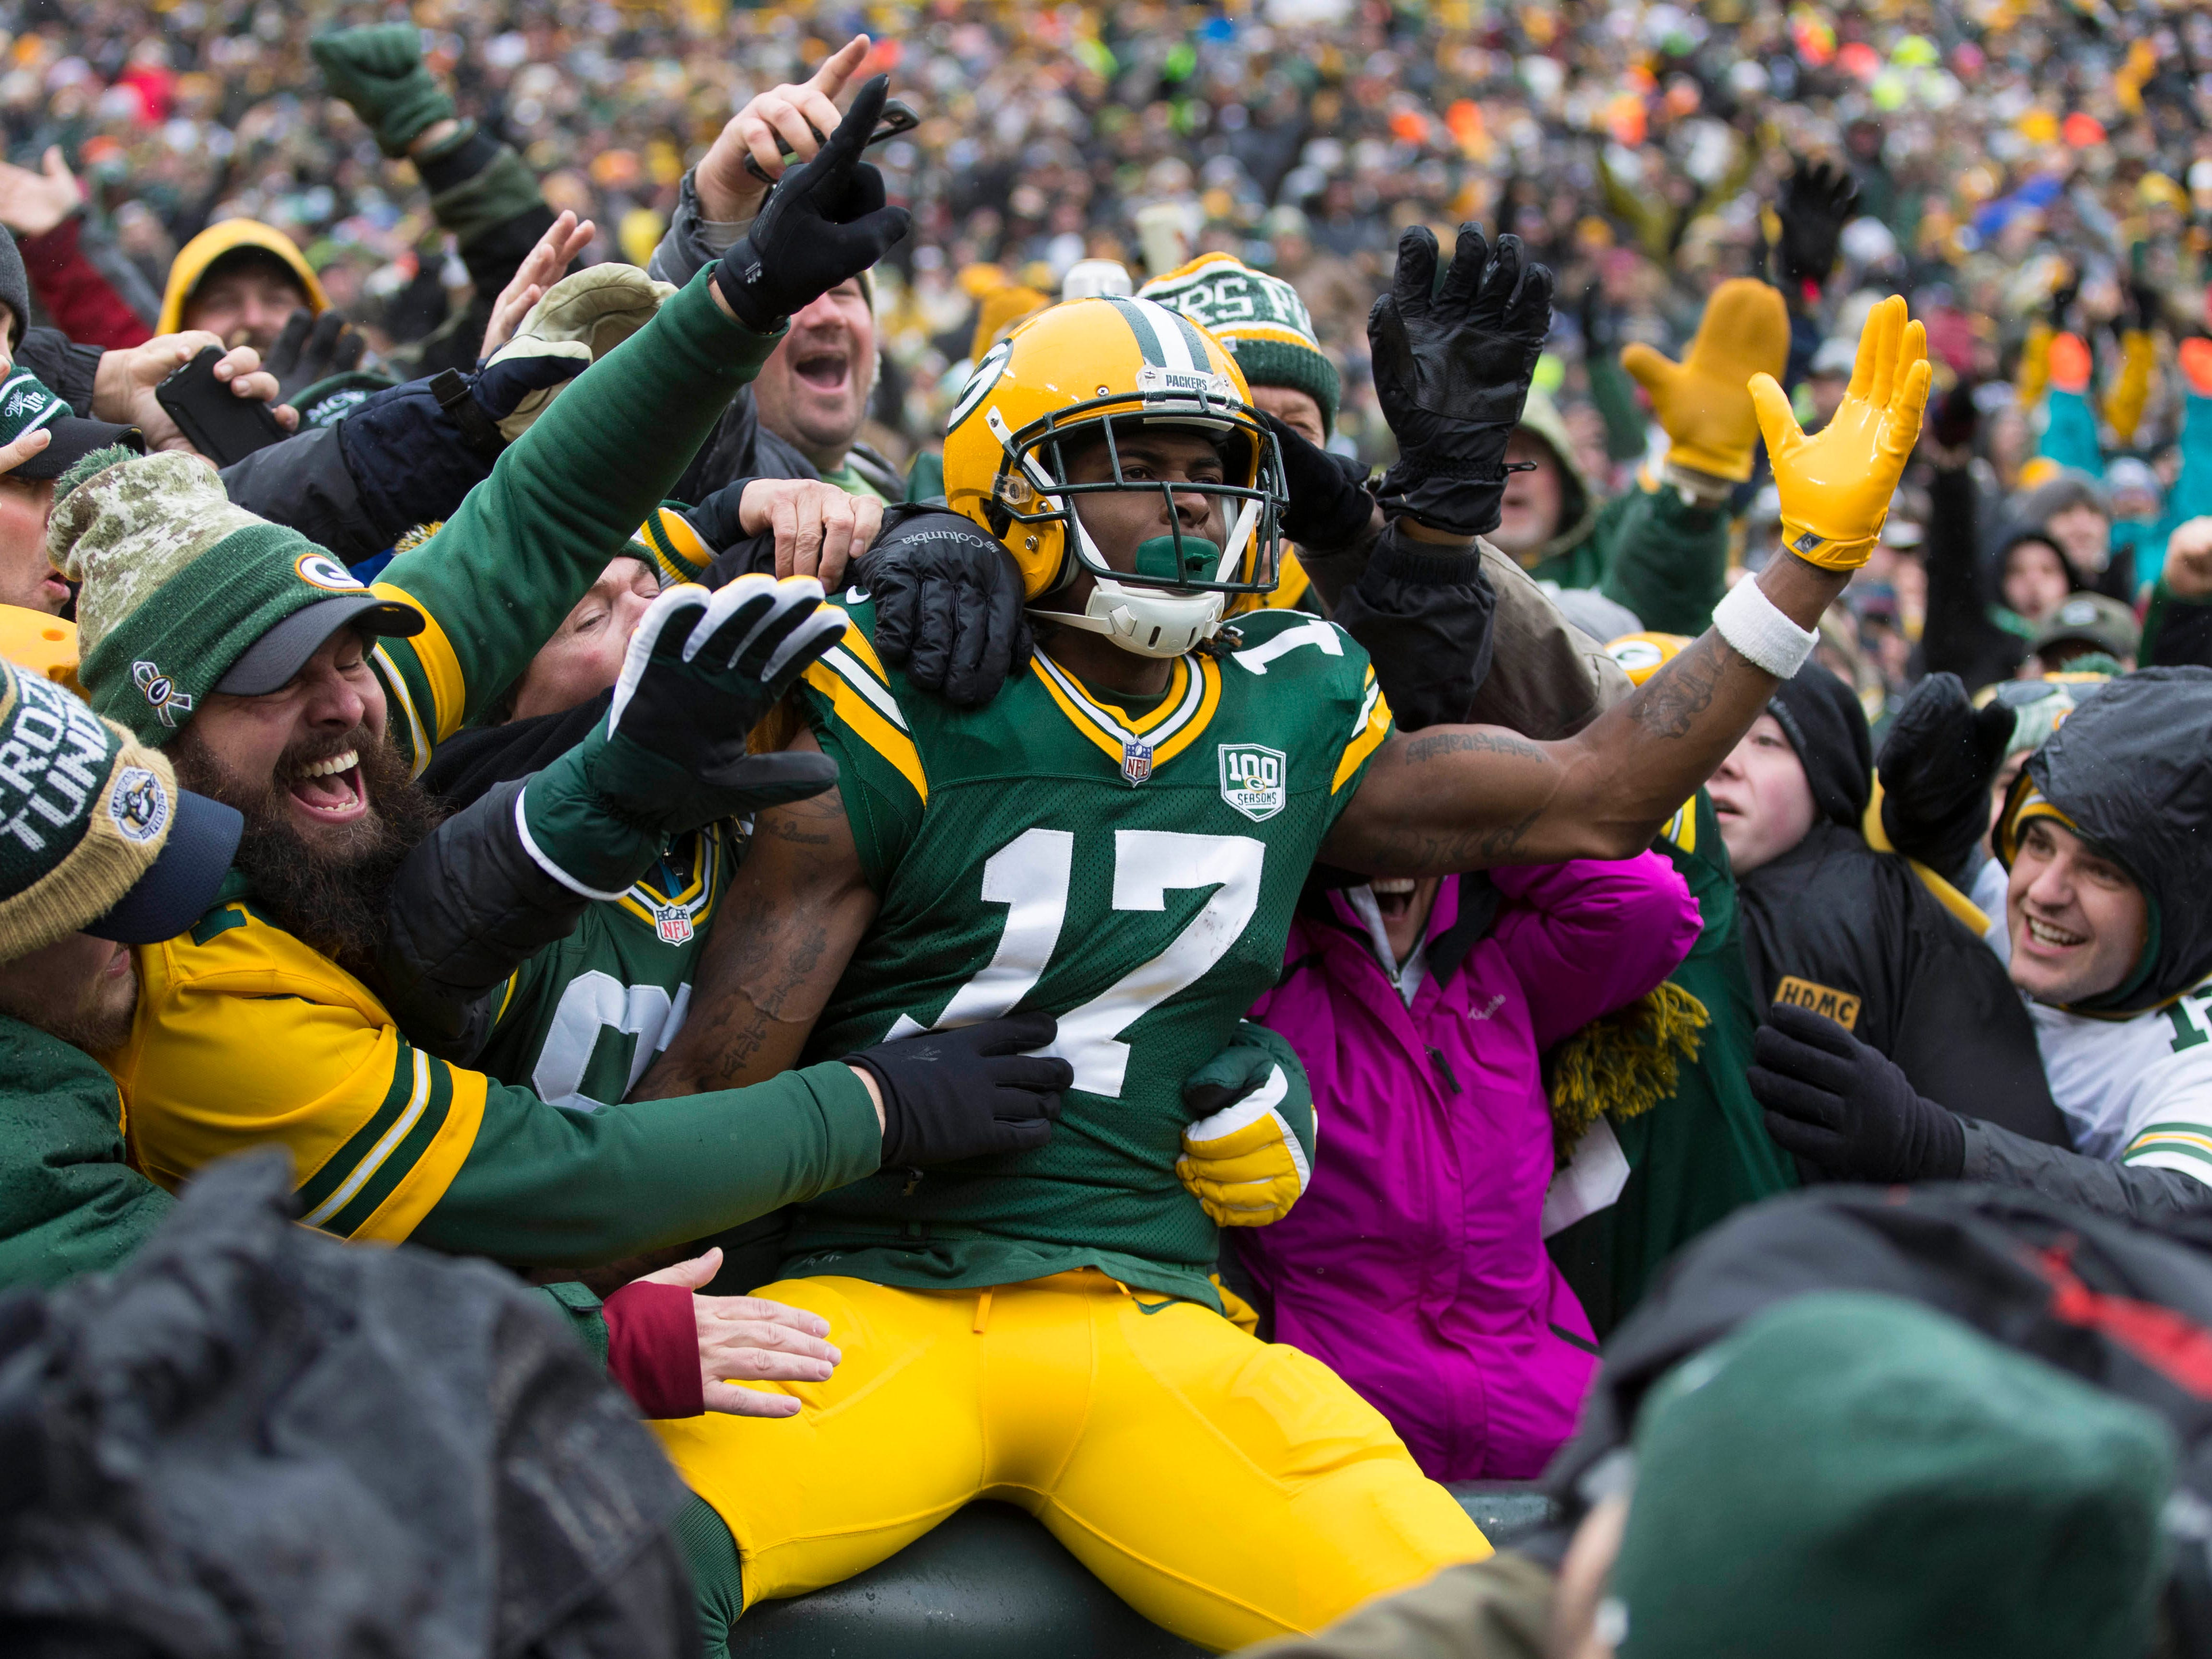 Green Bay Packers wide receiver Davante Adams (17) celebrates after scoring a touchdown during the second quarter against the Arizona Cardinals at Lambeau Field.